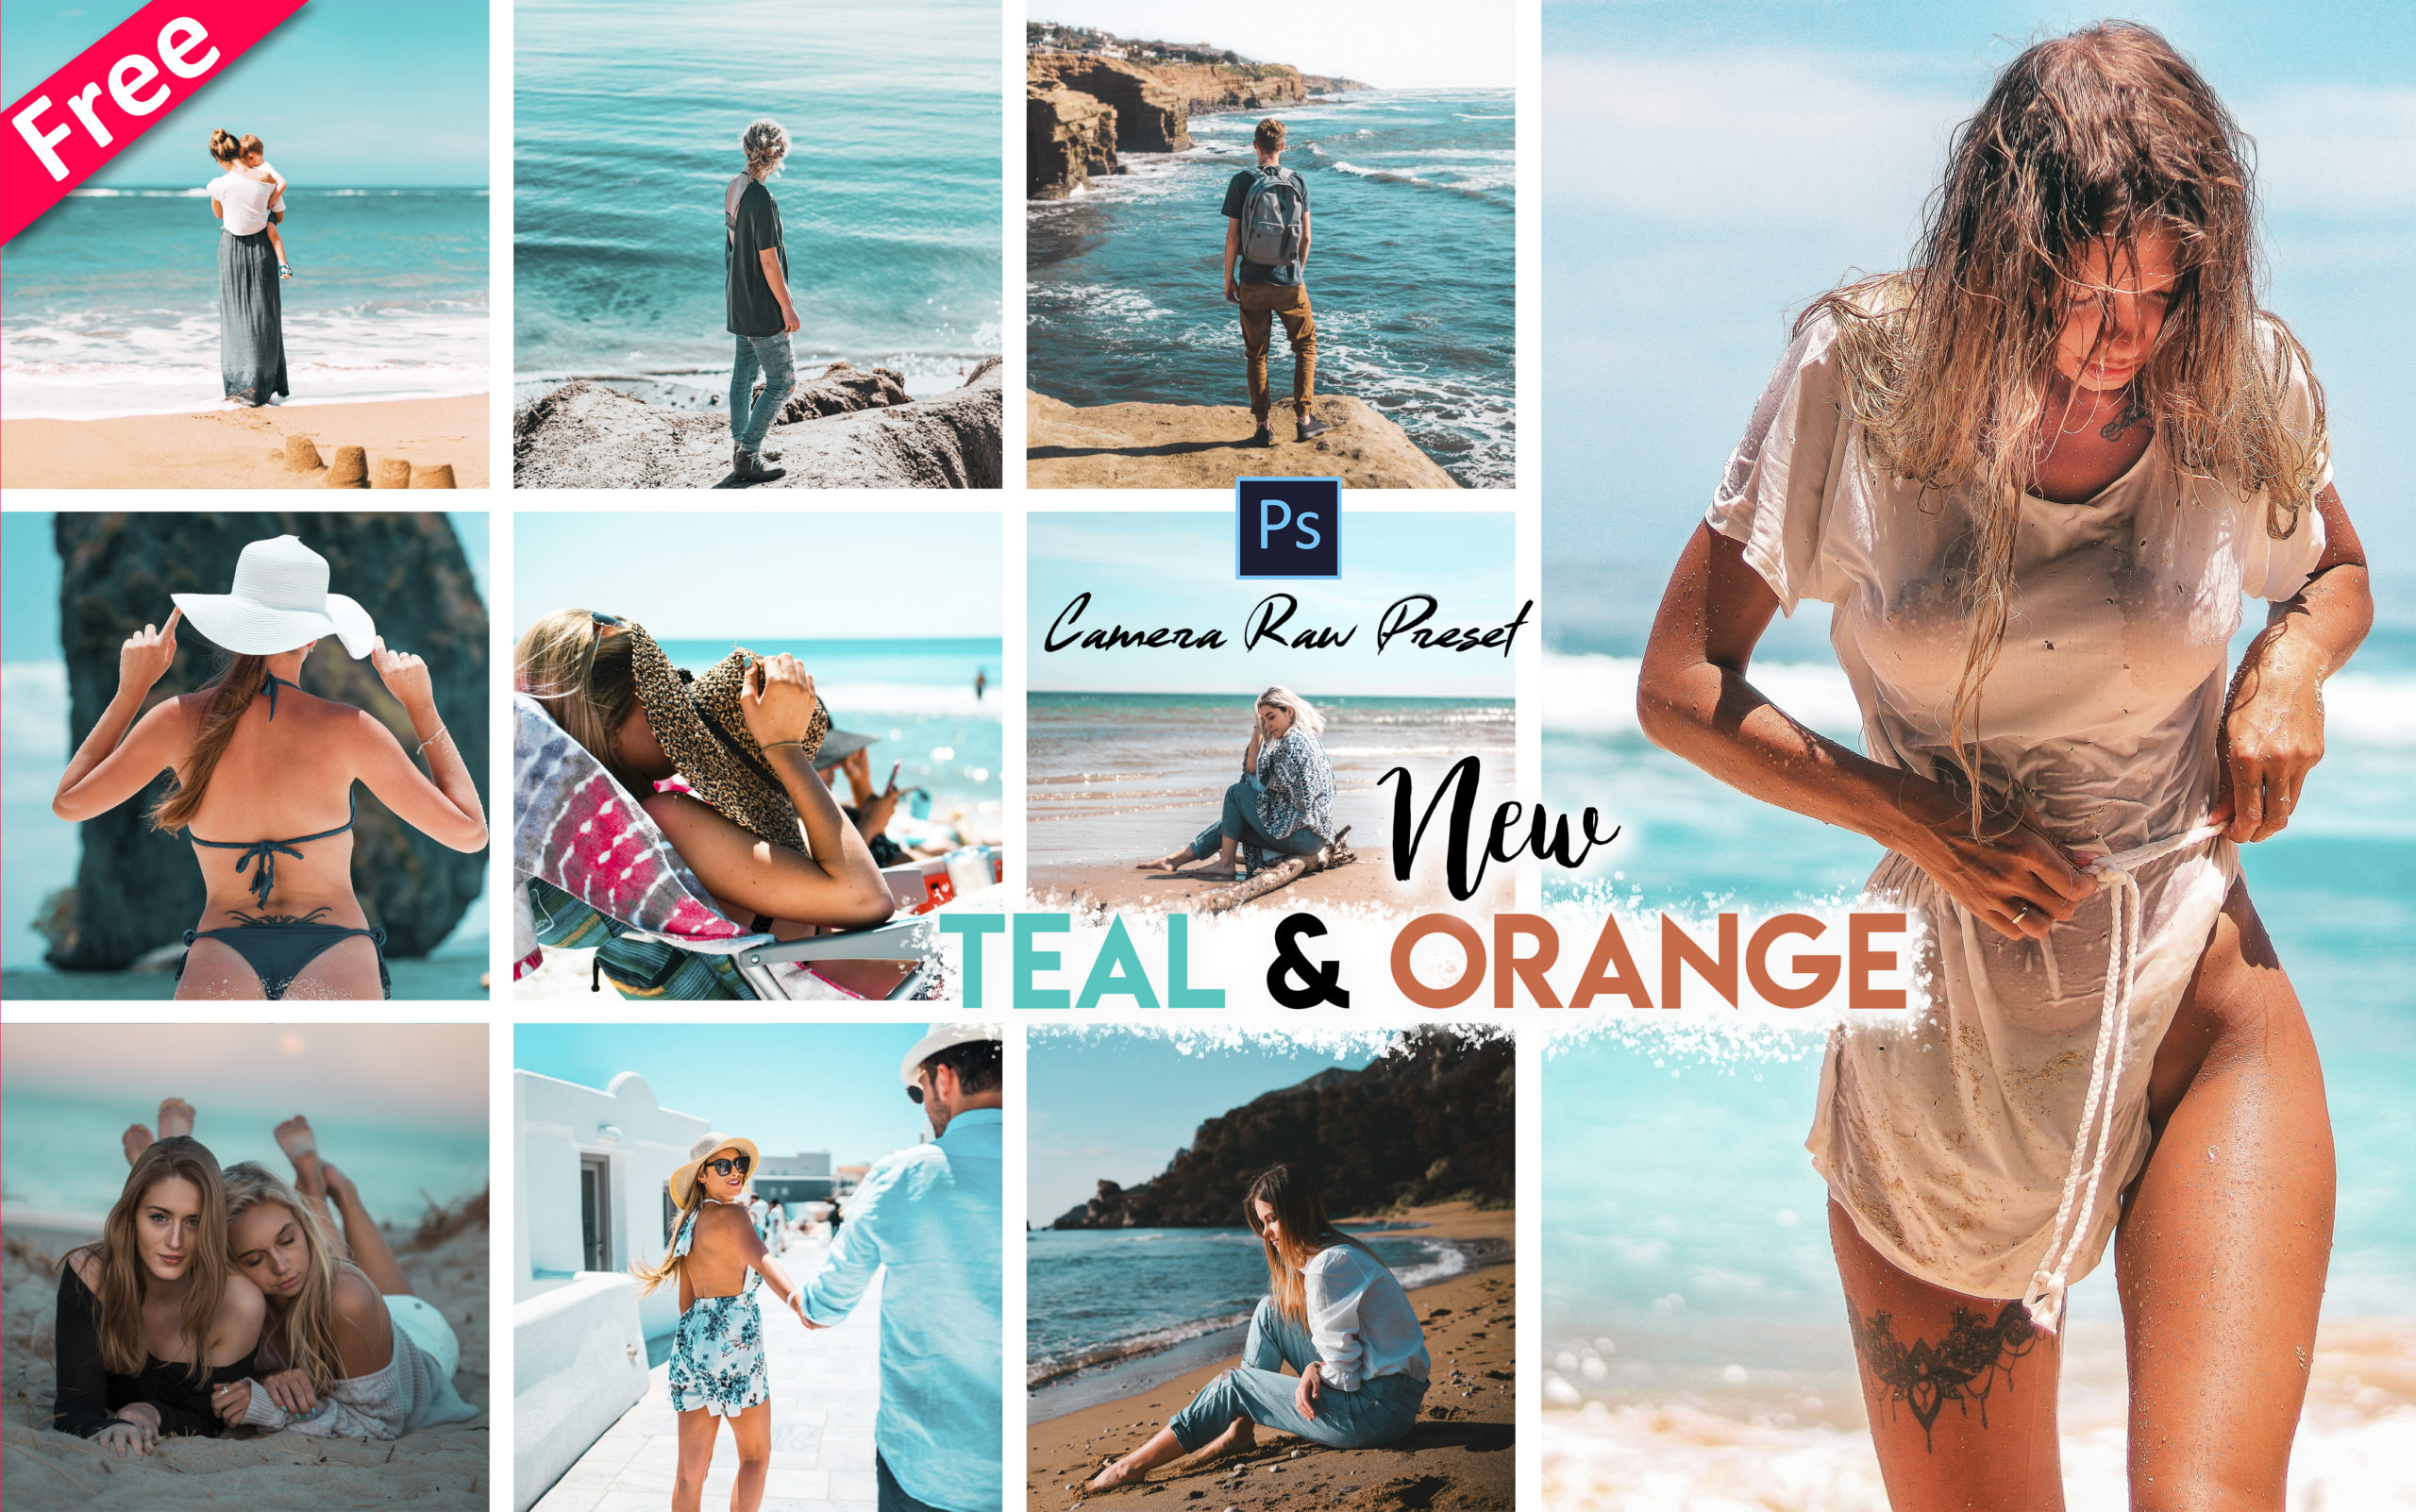 Teal & Orange Tone Camera Raw Presets for Free | How to Make Teal & Orange Tone Effect to Photos in Photoshop